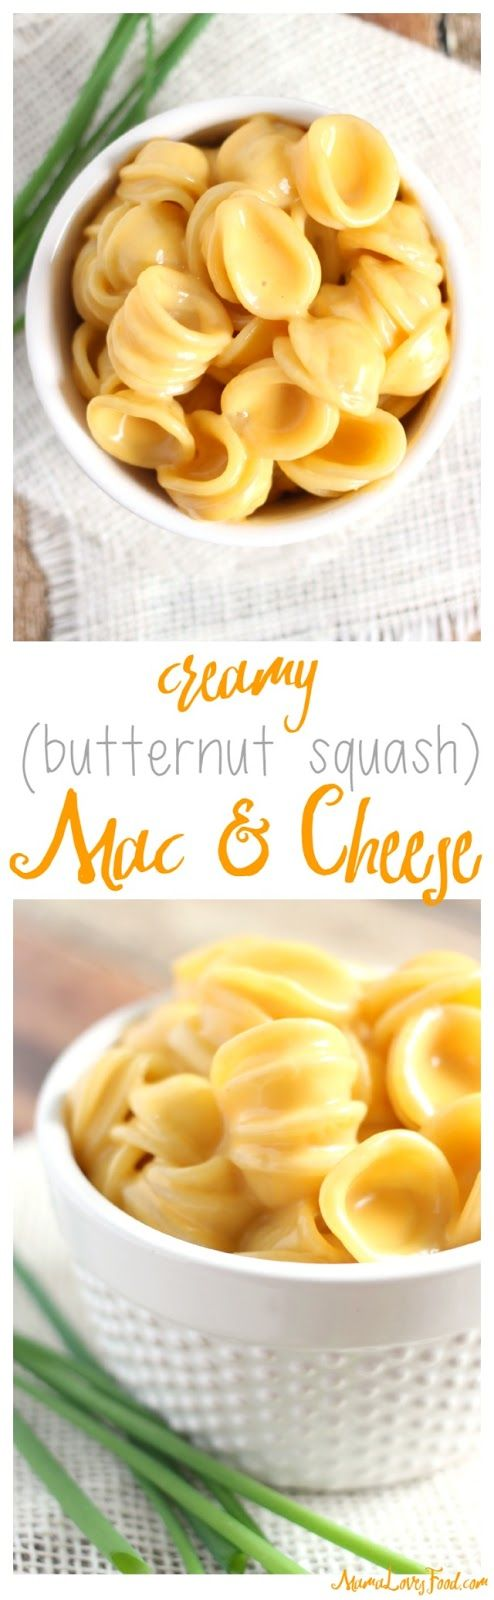 Creamy Butternut Squash Mac #SproutFoods ad